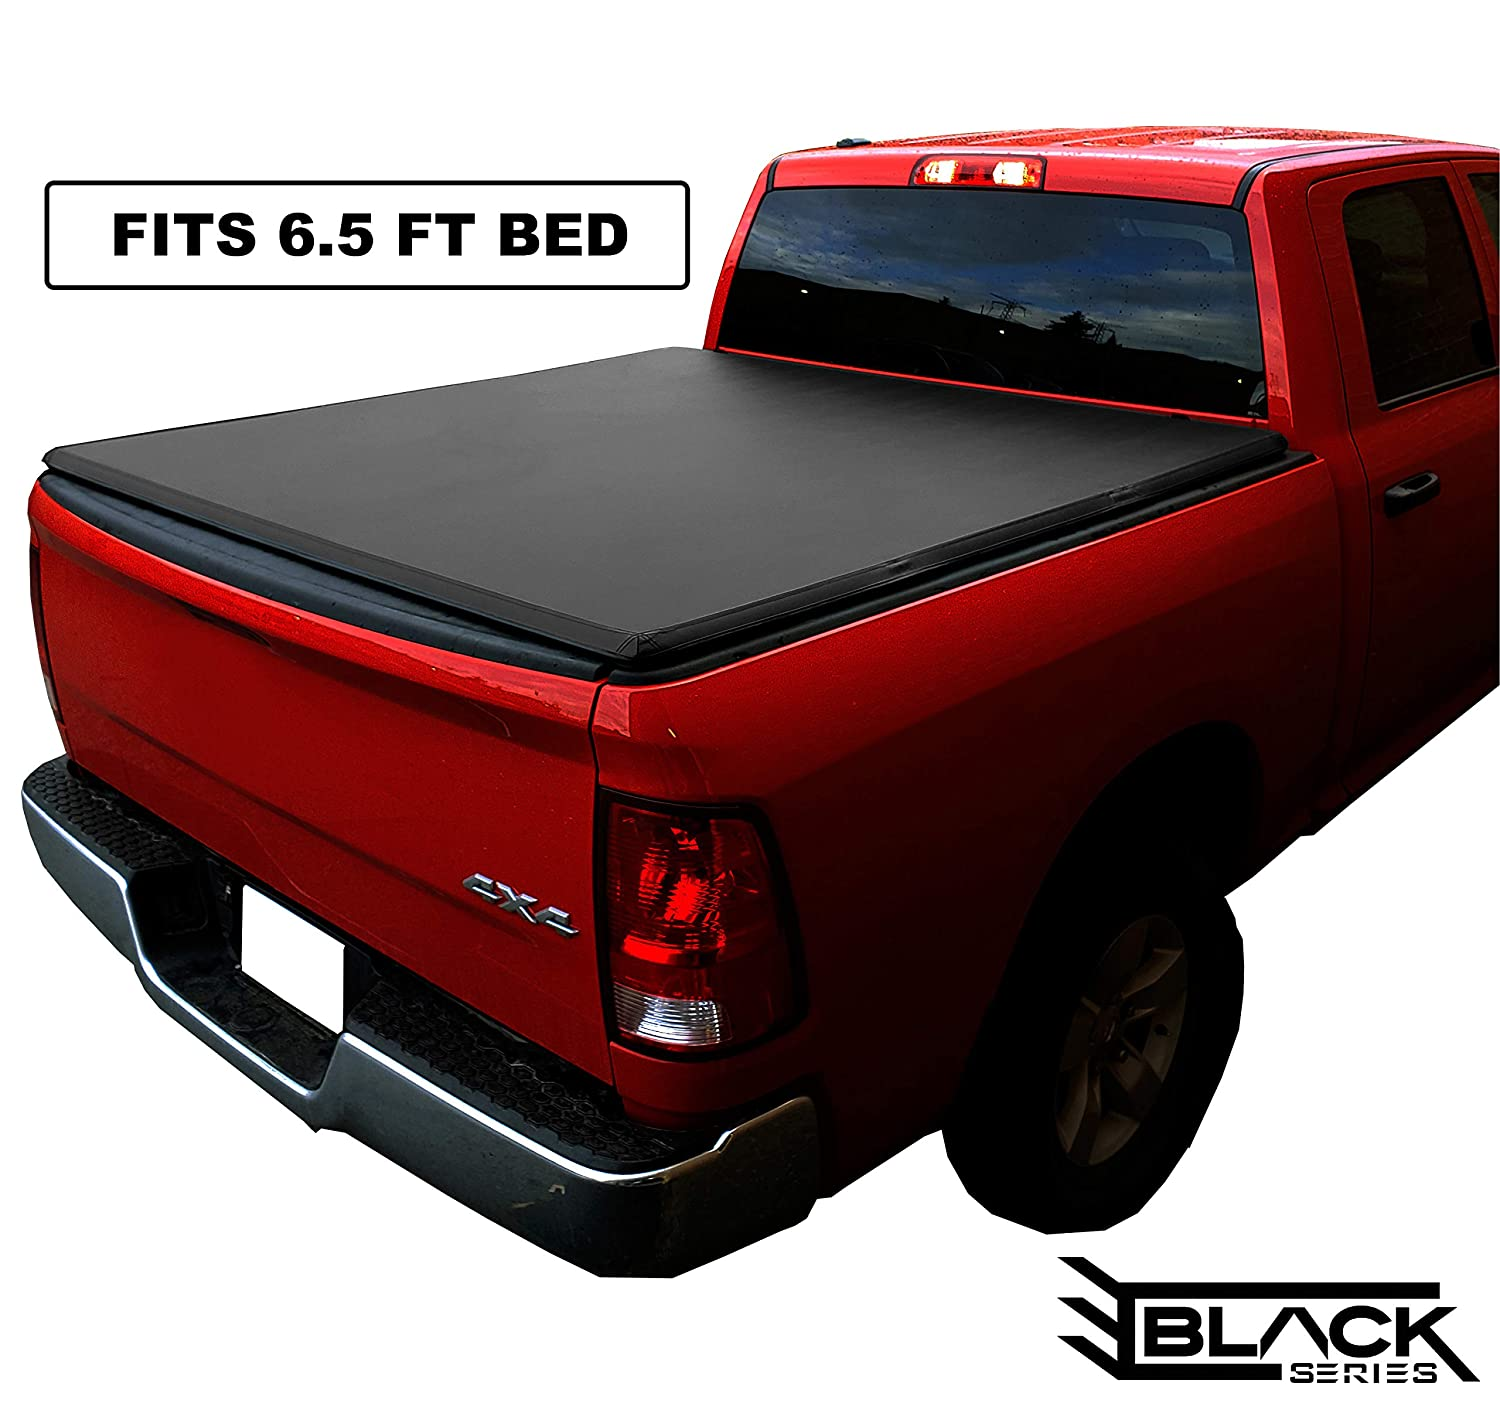 Premium Soft Tri-Fold Tonneau Pickup Truck Cover (Fits 2014-2019 Toyota Tundra 6.5 Feet (76.8 Inches / 2.0 Metres) Bed Box Size) Black Series Canada